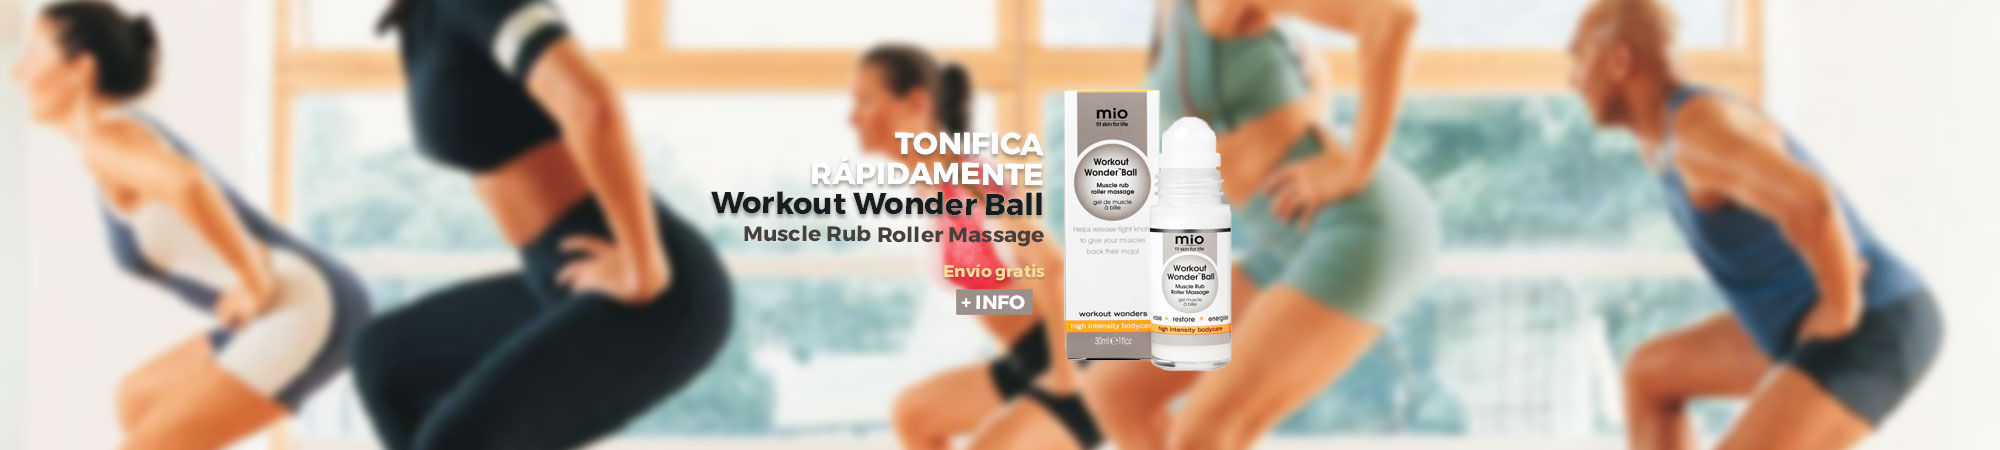 Mio Workout Wonder Muscle Roller